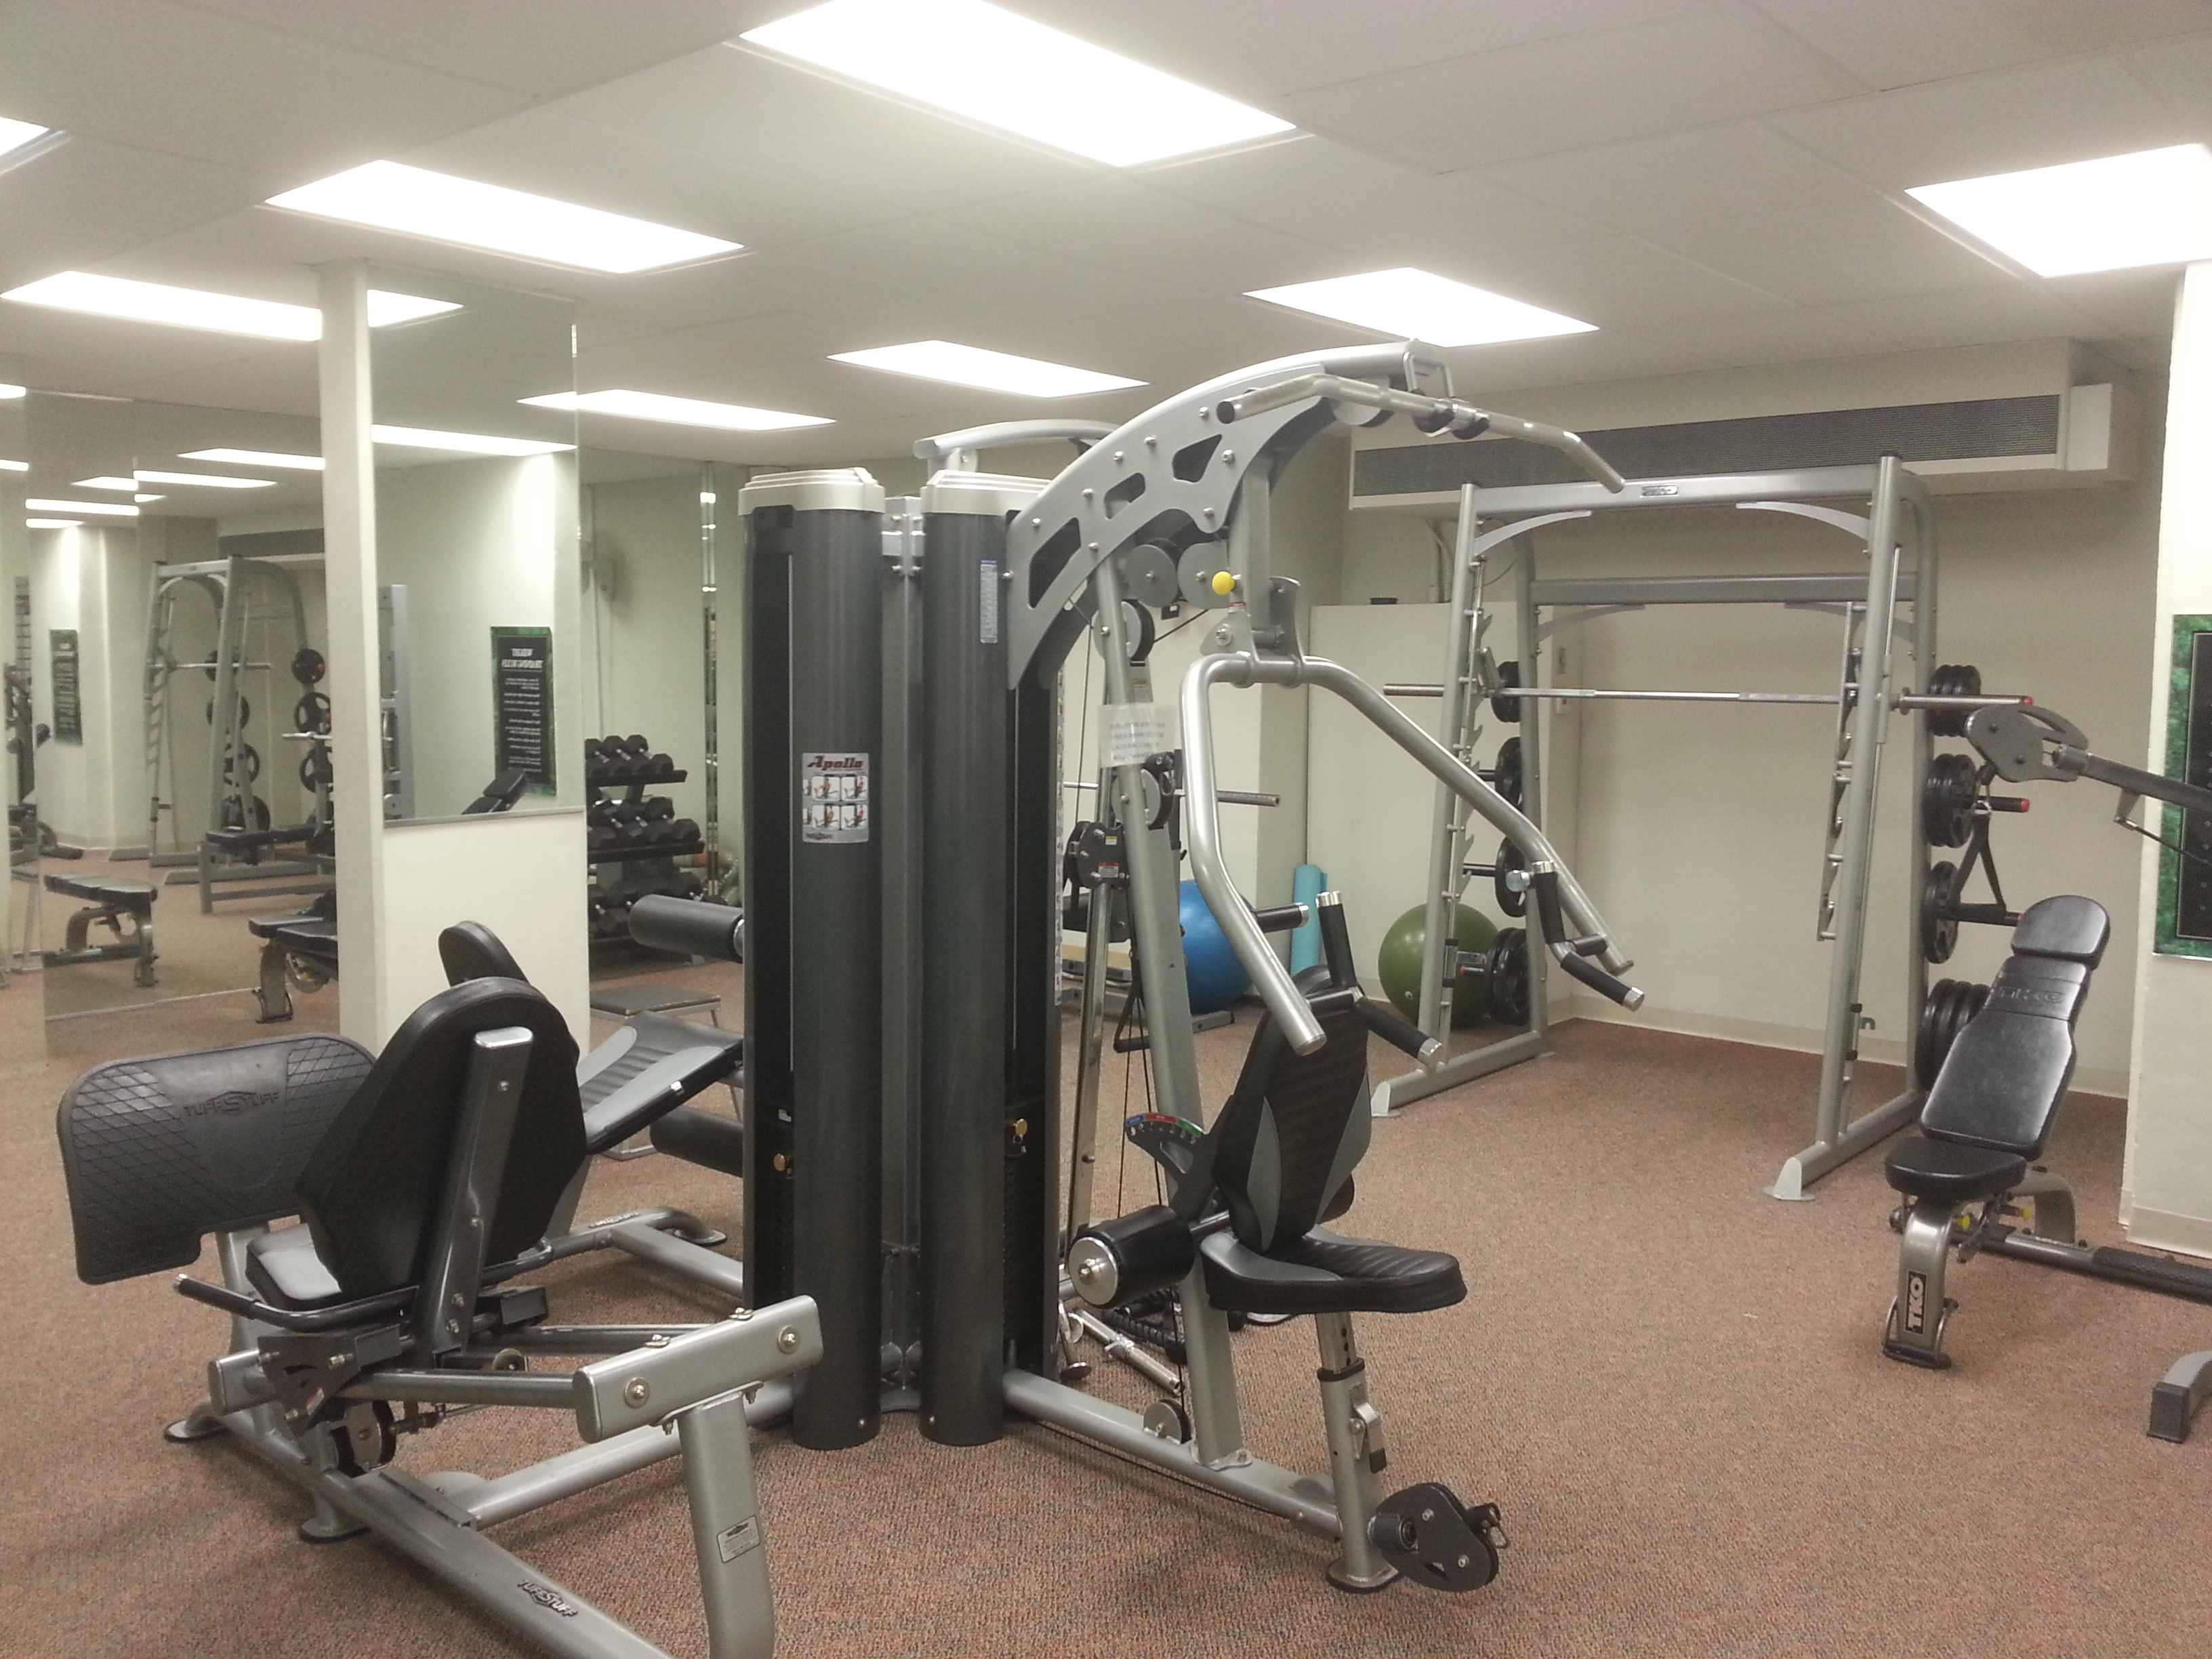 In addition to the fitness room pictured here, Eastpointe also has a cardio room.